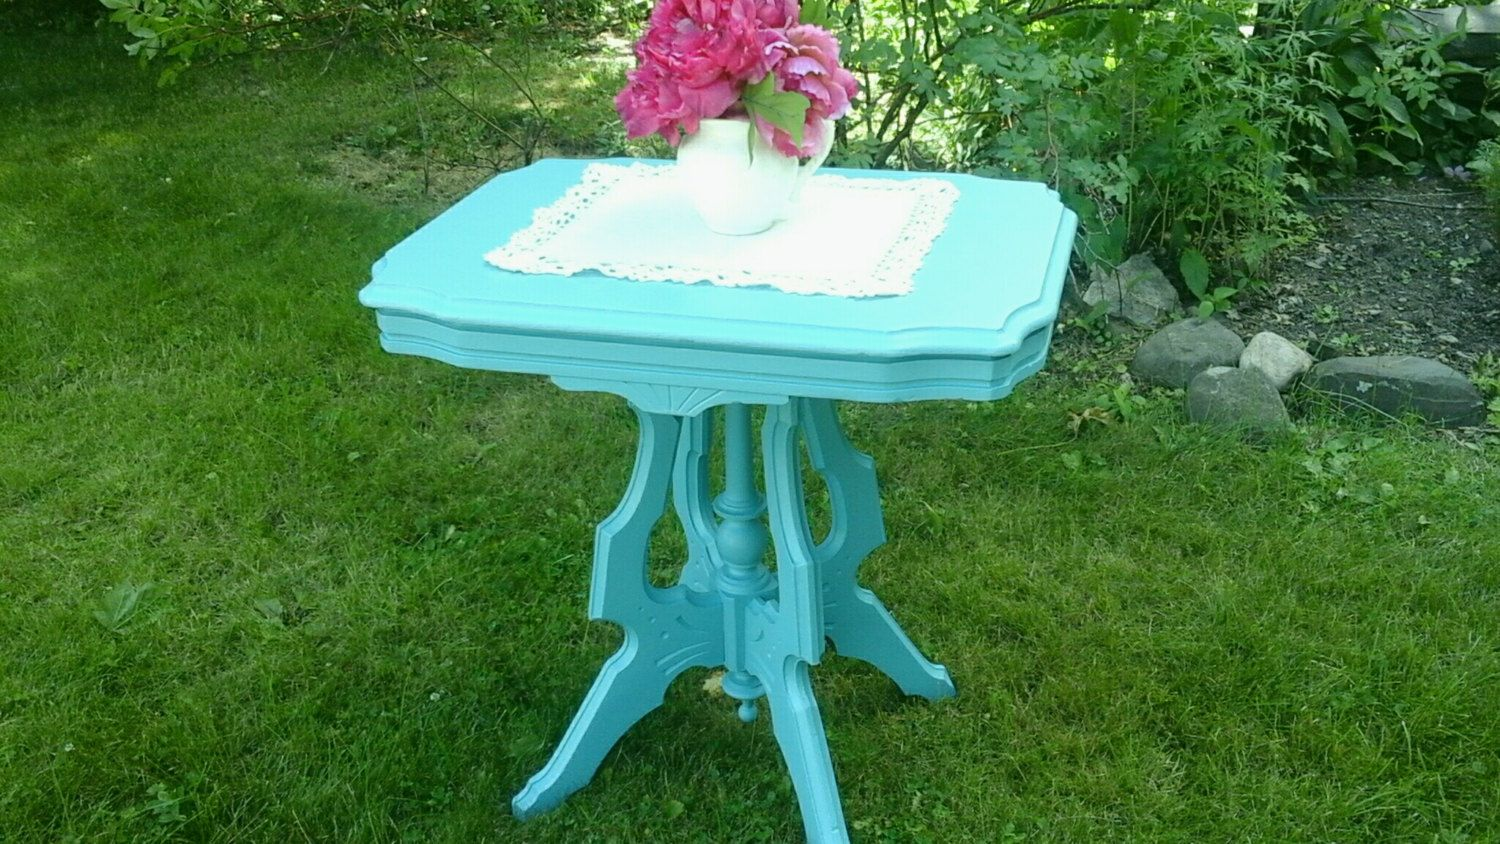 victorian table eastlake style turquoise accent side upcycled furniture only albany hudson valley tall thin bedside outdoor top barn door pool deck retro desk red patio small